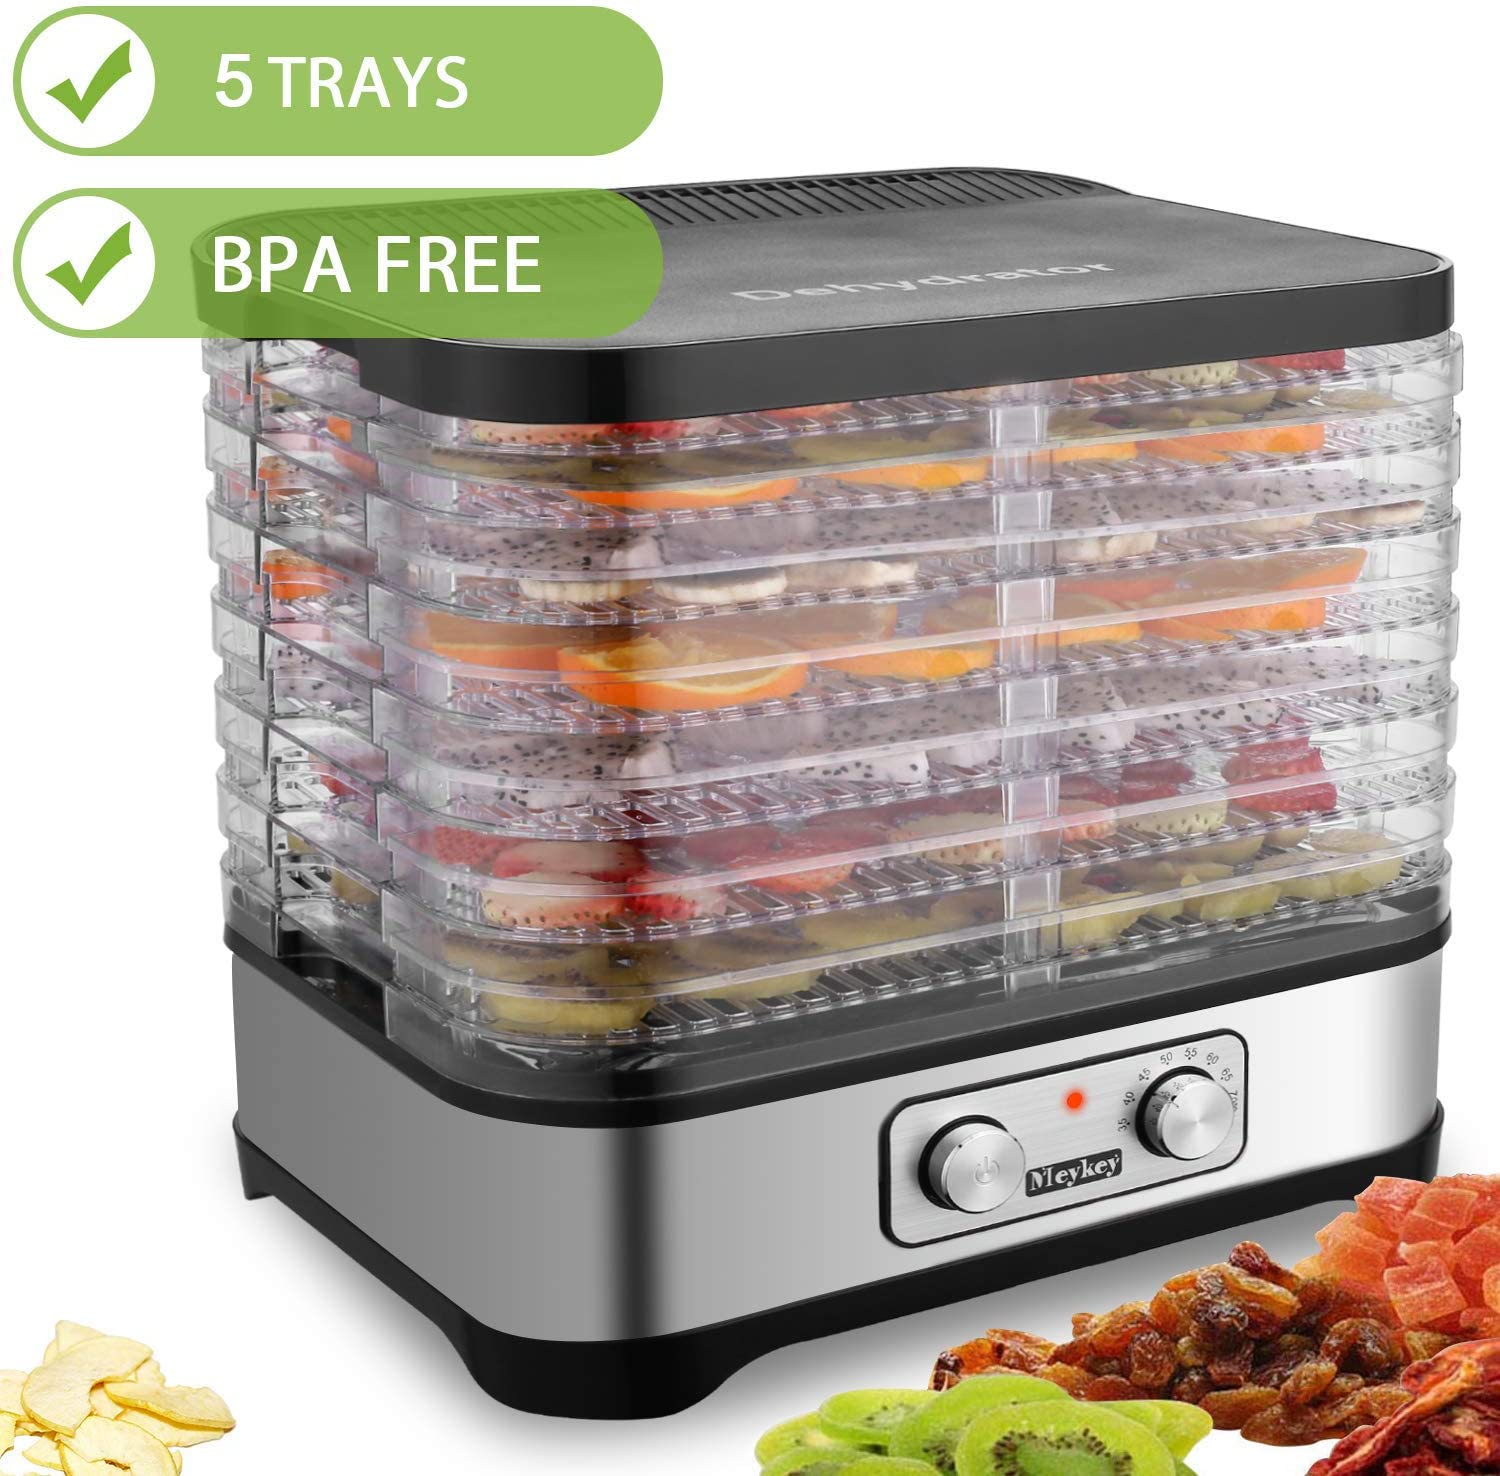 Hauture Food Dehydrator Machine, Food Dryer for Jerky Meat Beef Fruit Vegetable, Temperature Control, 5 Trays